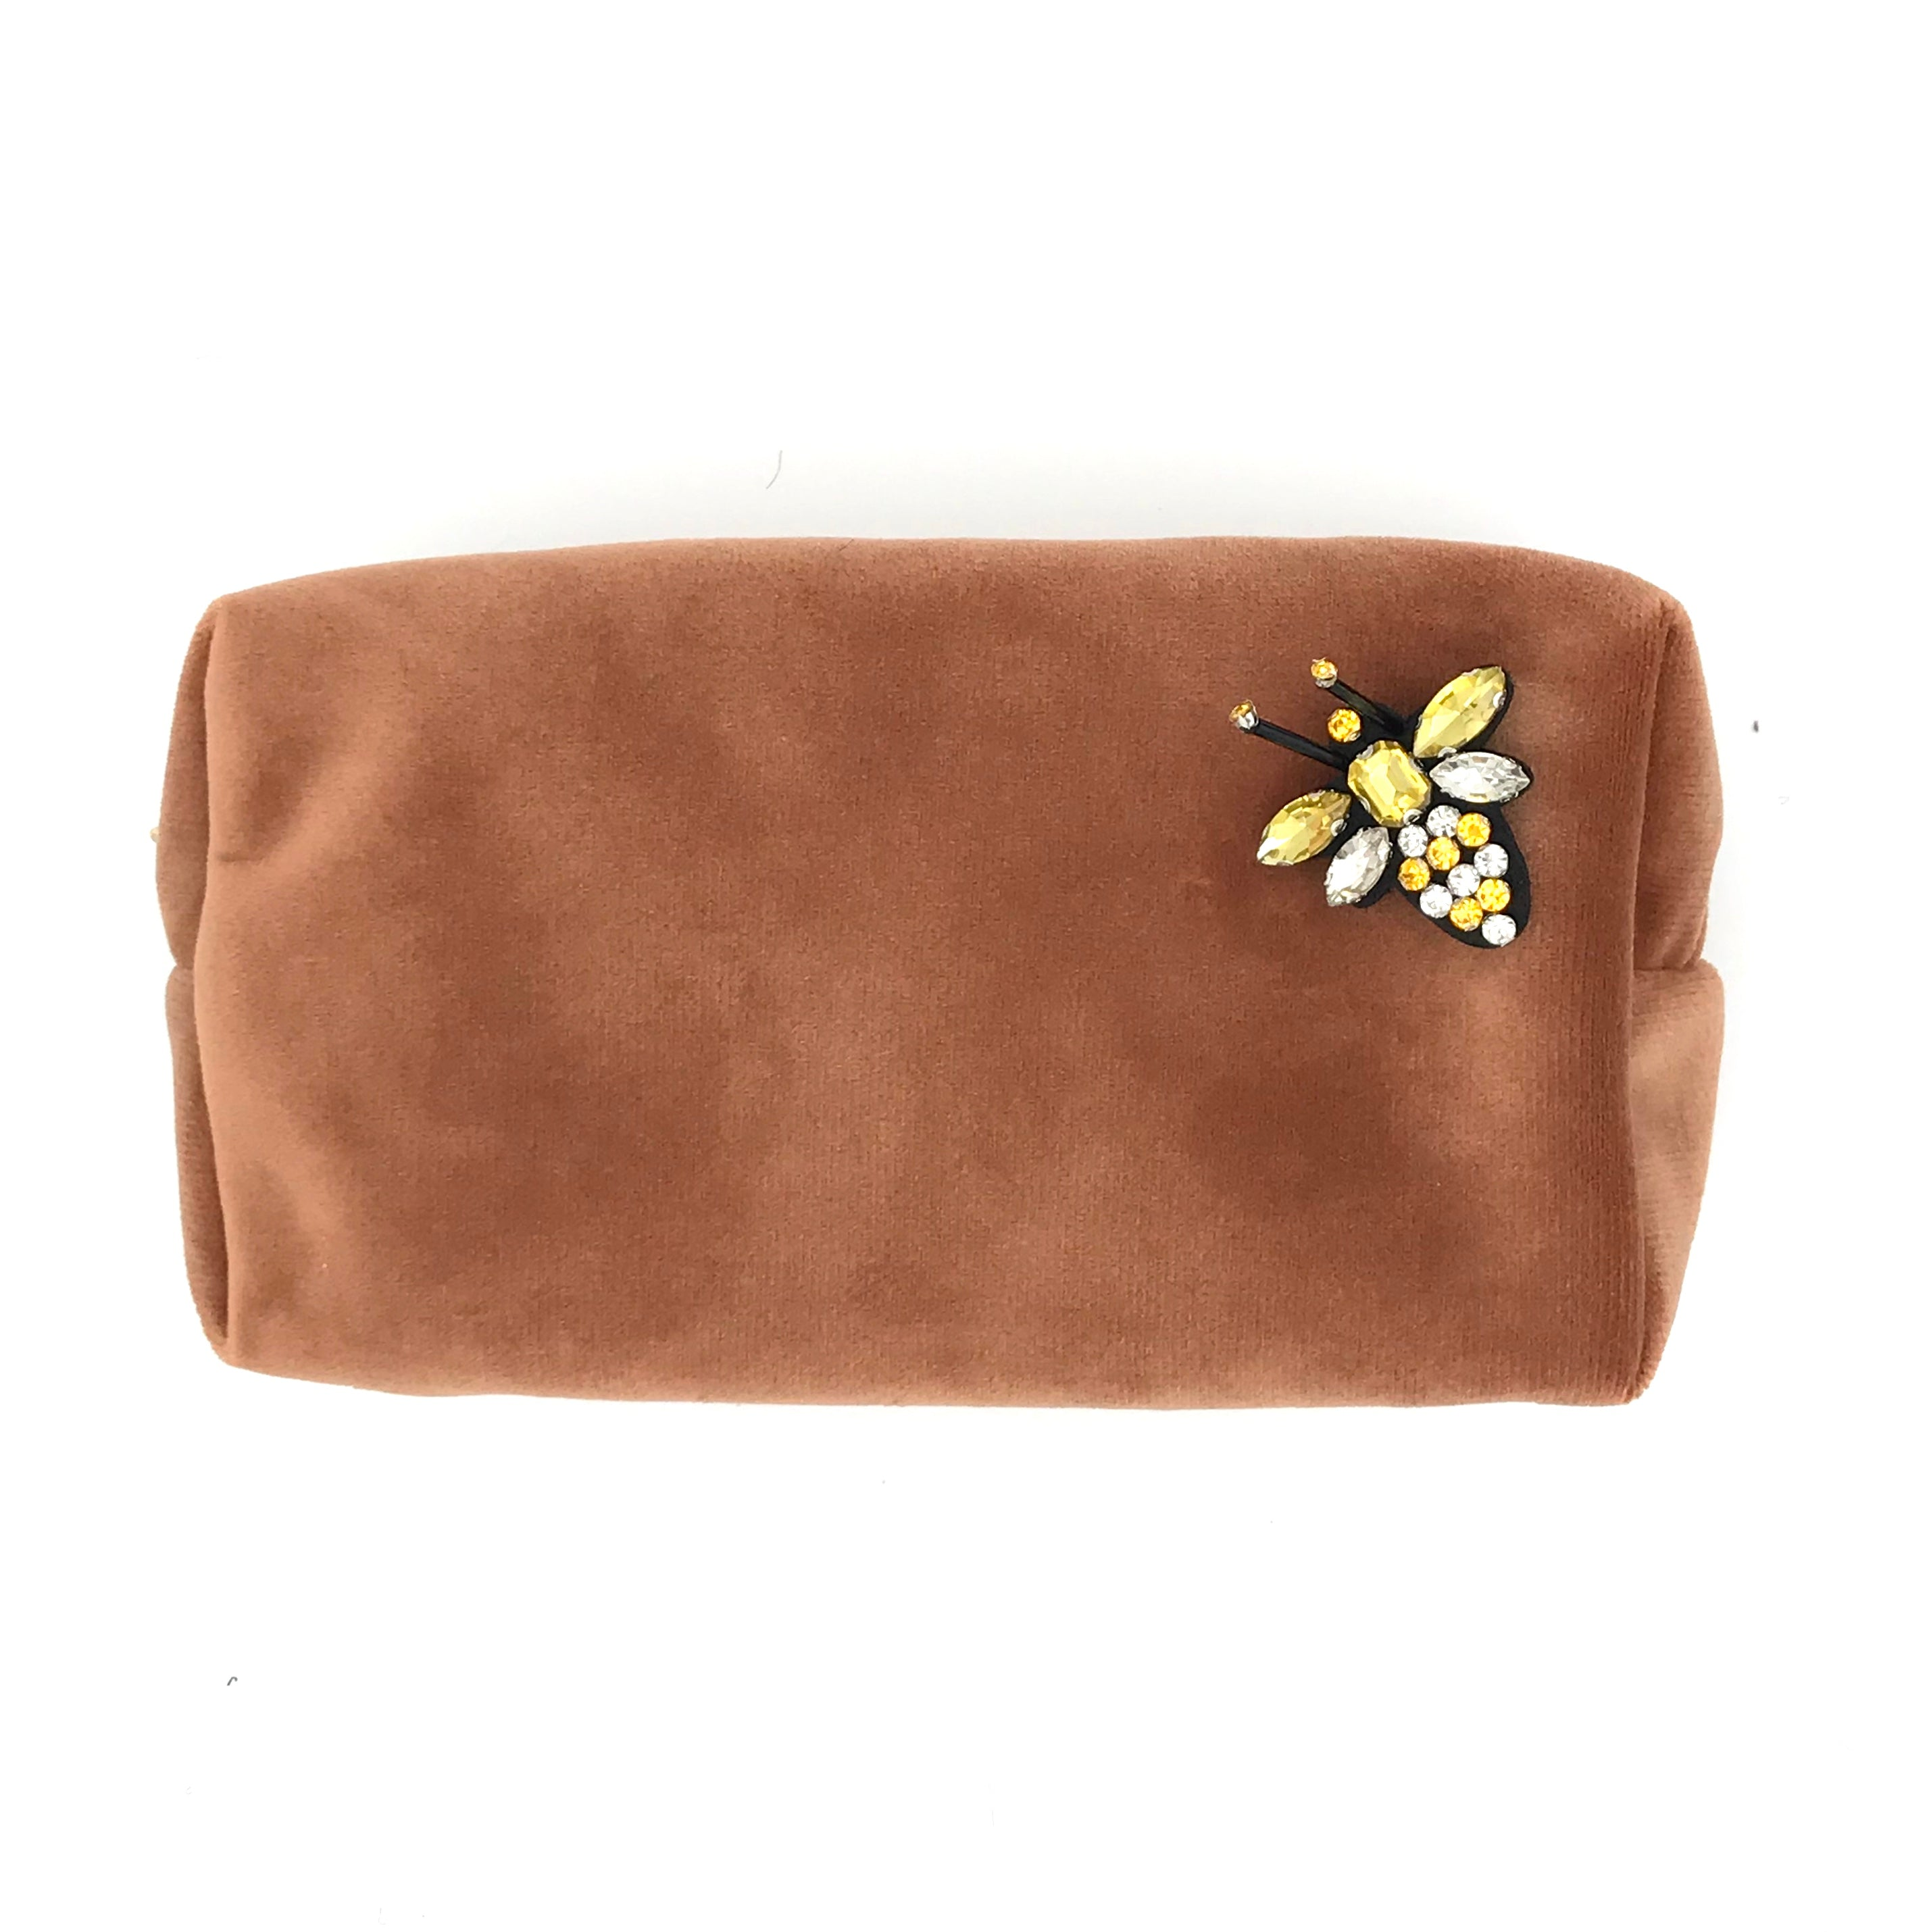 Velvet make-up bag in peach with a bumblebee pin